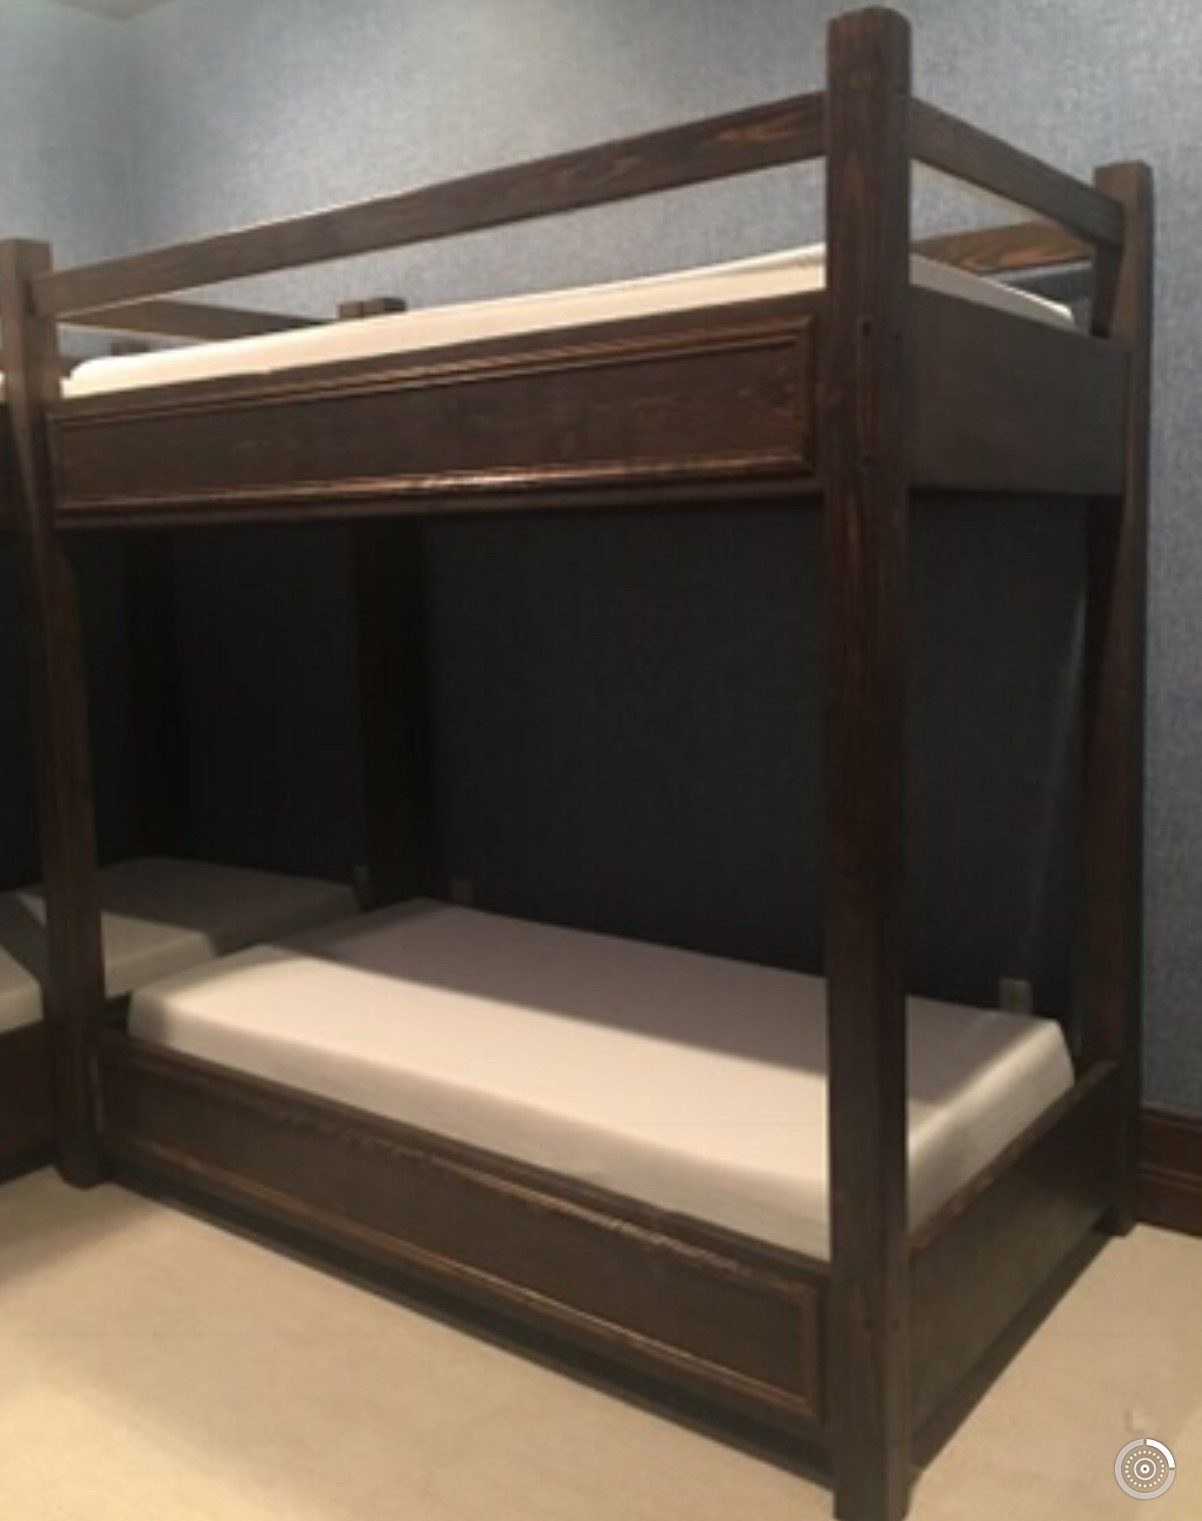 california bunk beds